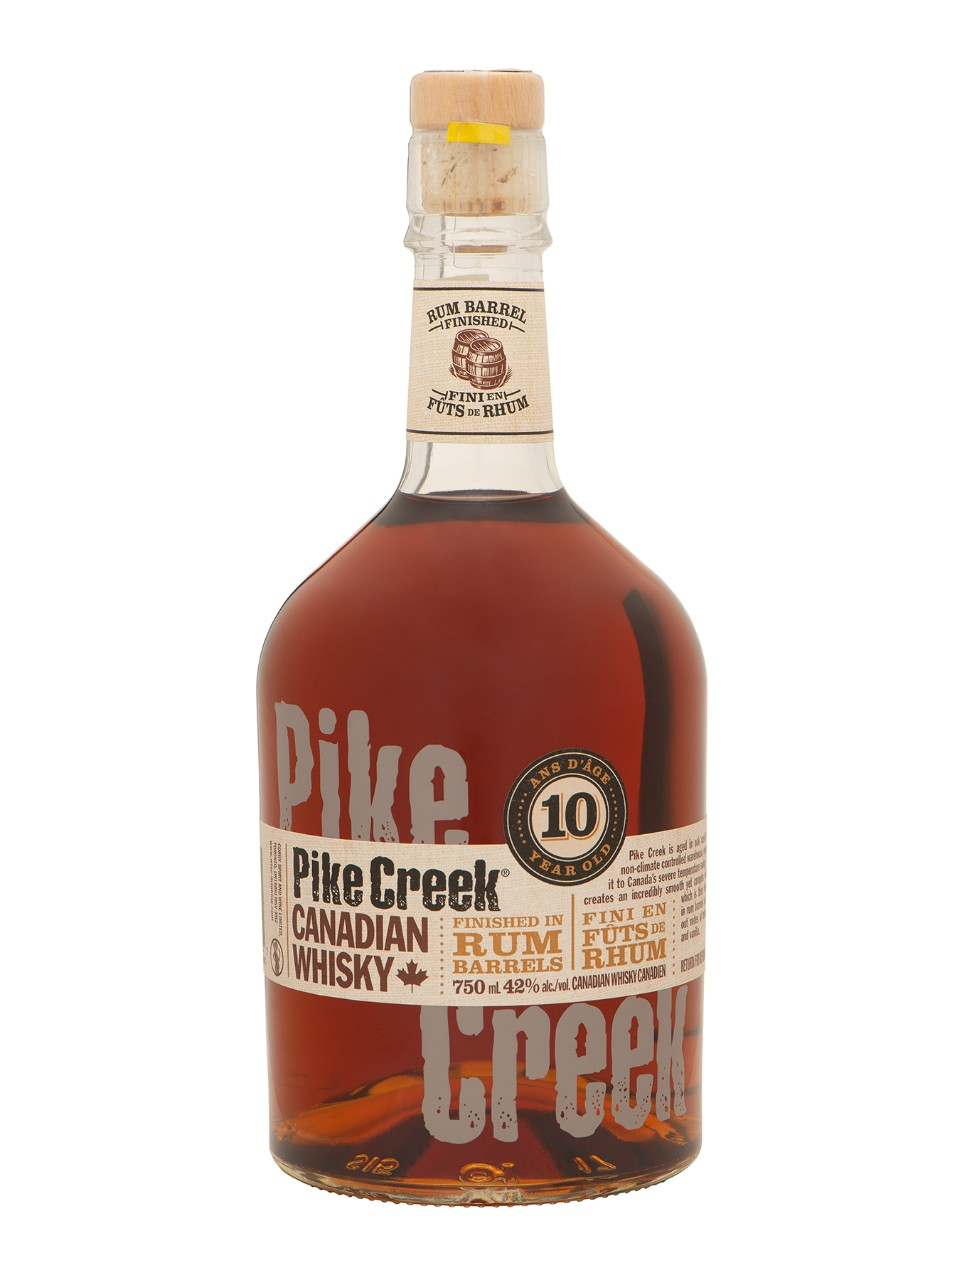 3f51d7013e22 Image for Pike Creek Double Barreled Canadian Whisky from LCBO